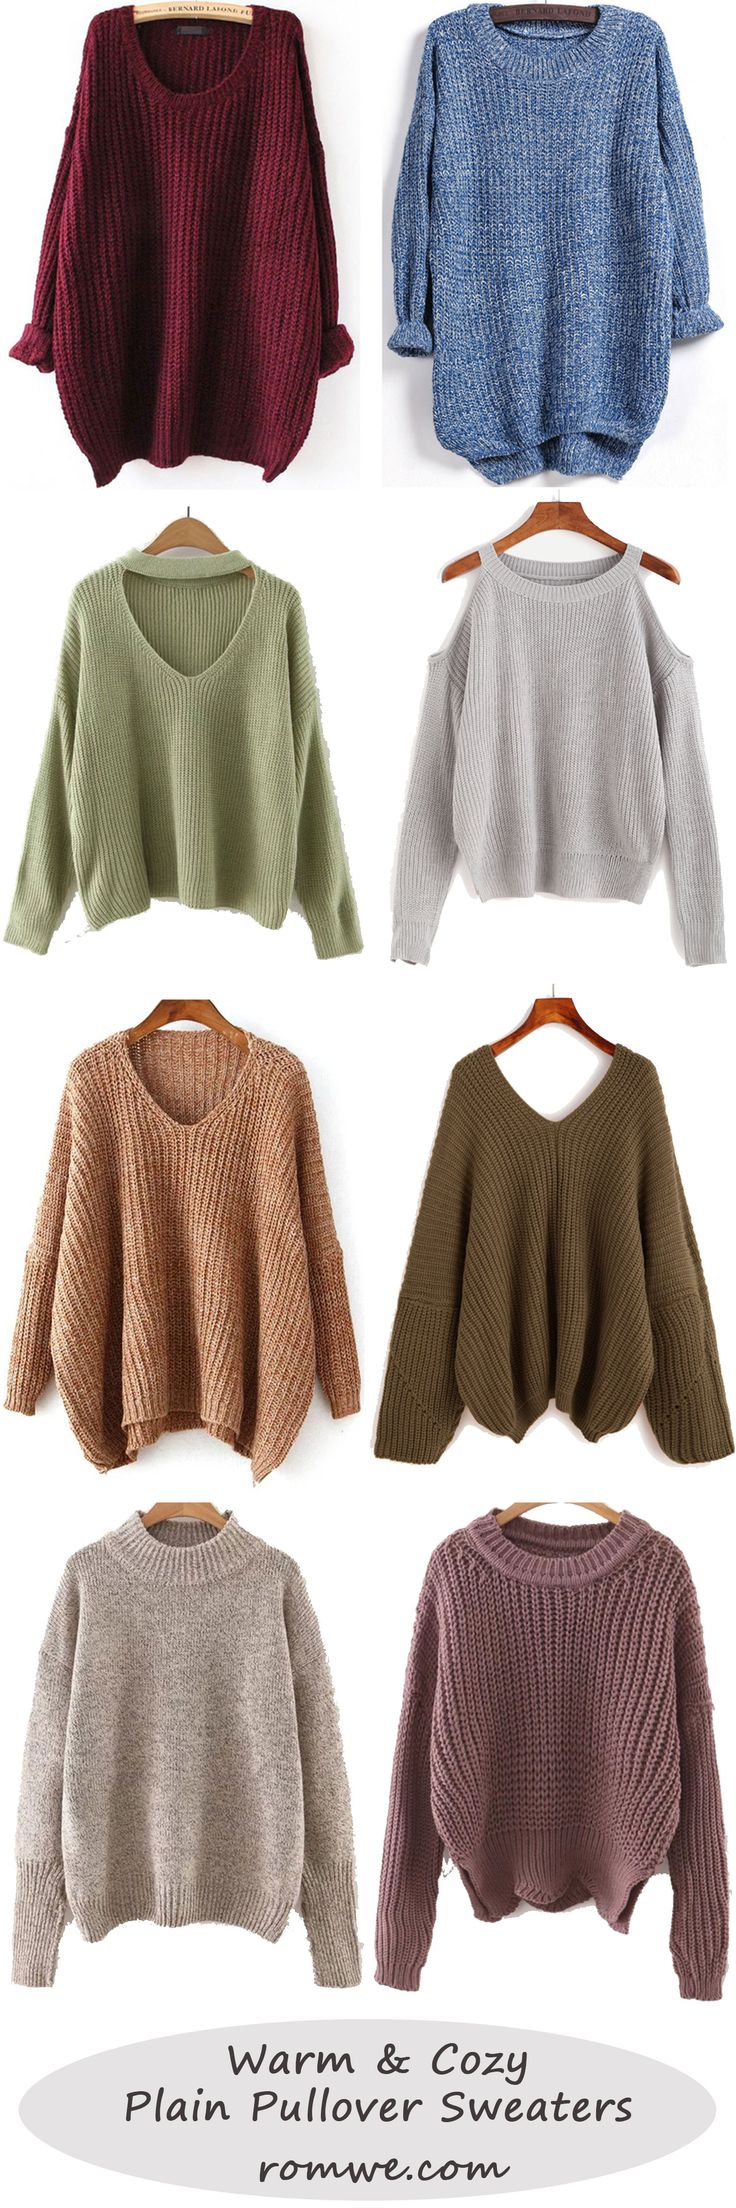 Cozy in the right way with soft material & easy return!  Keep it chic all day with romwe.com.